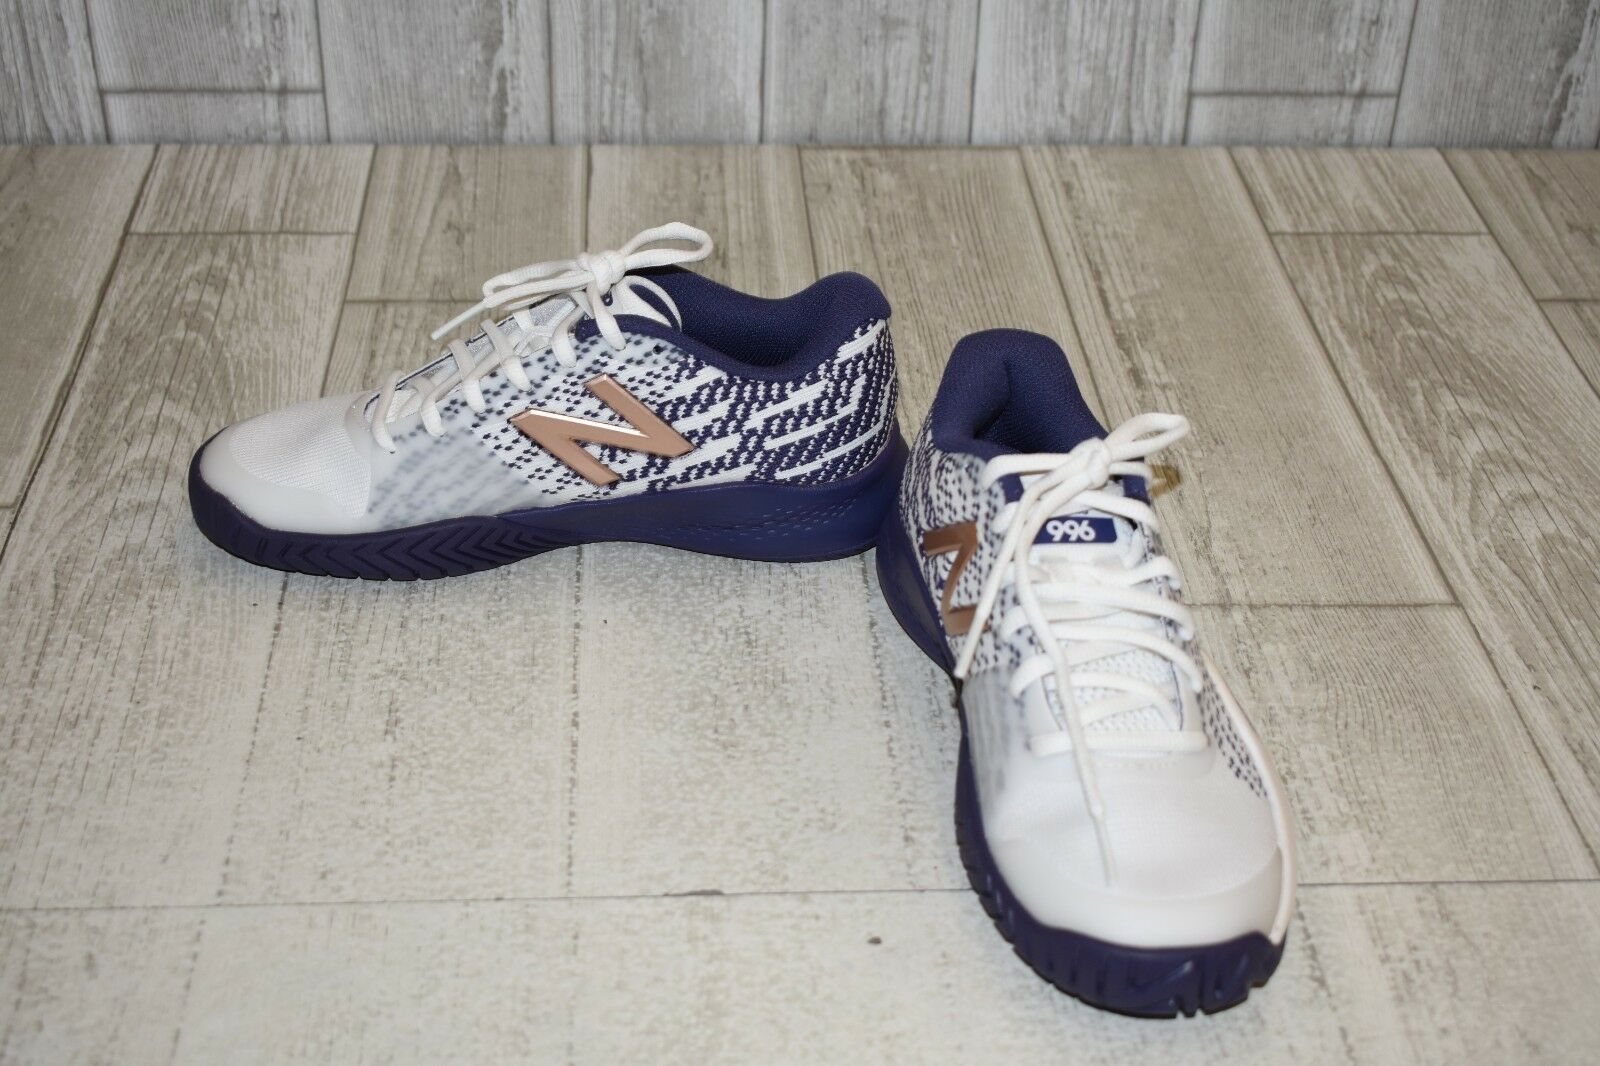 New Balance WCH996v3 Athletic shoes - Women's Size 6 B - White Purple NEW